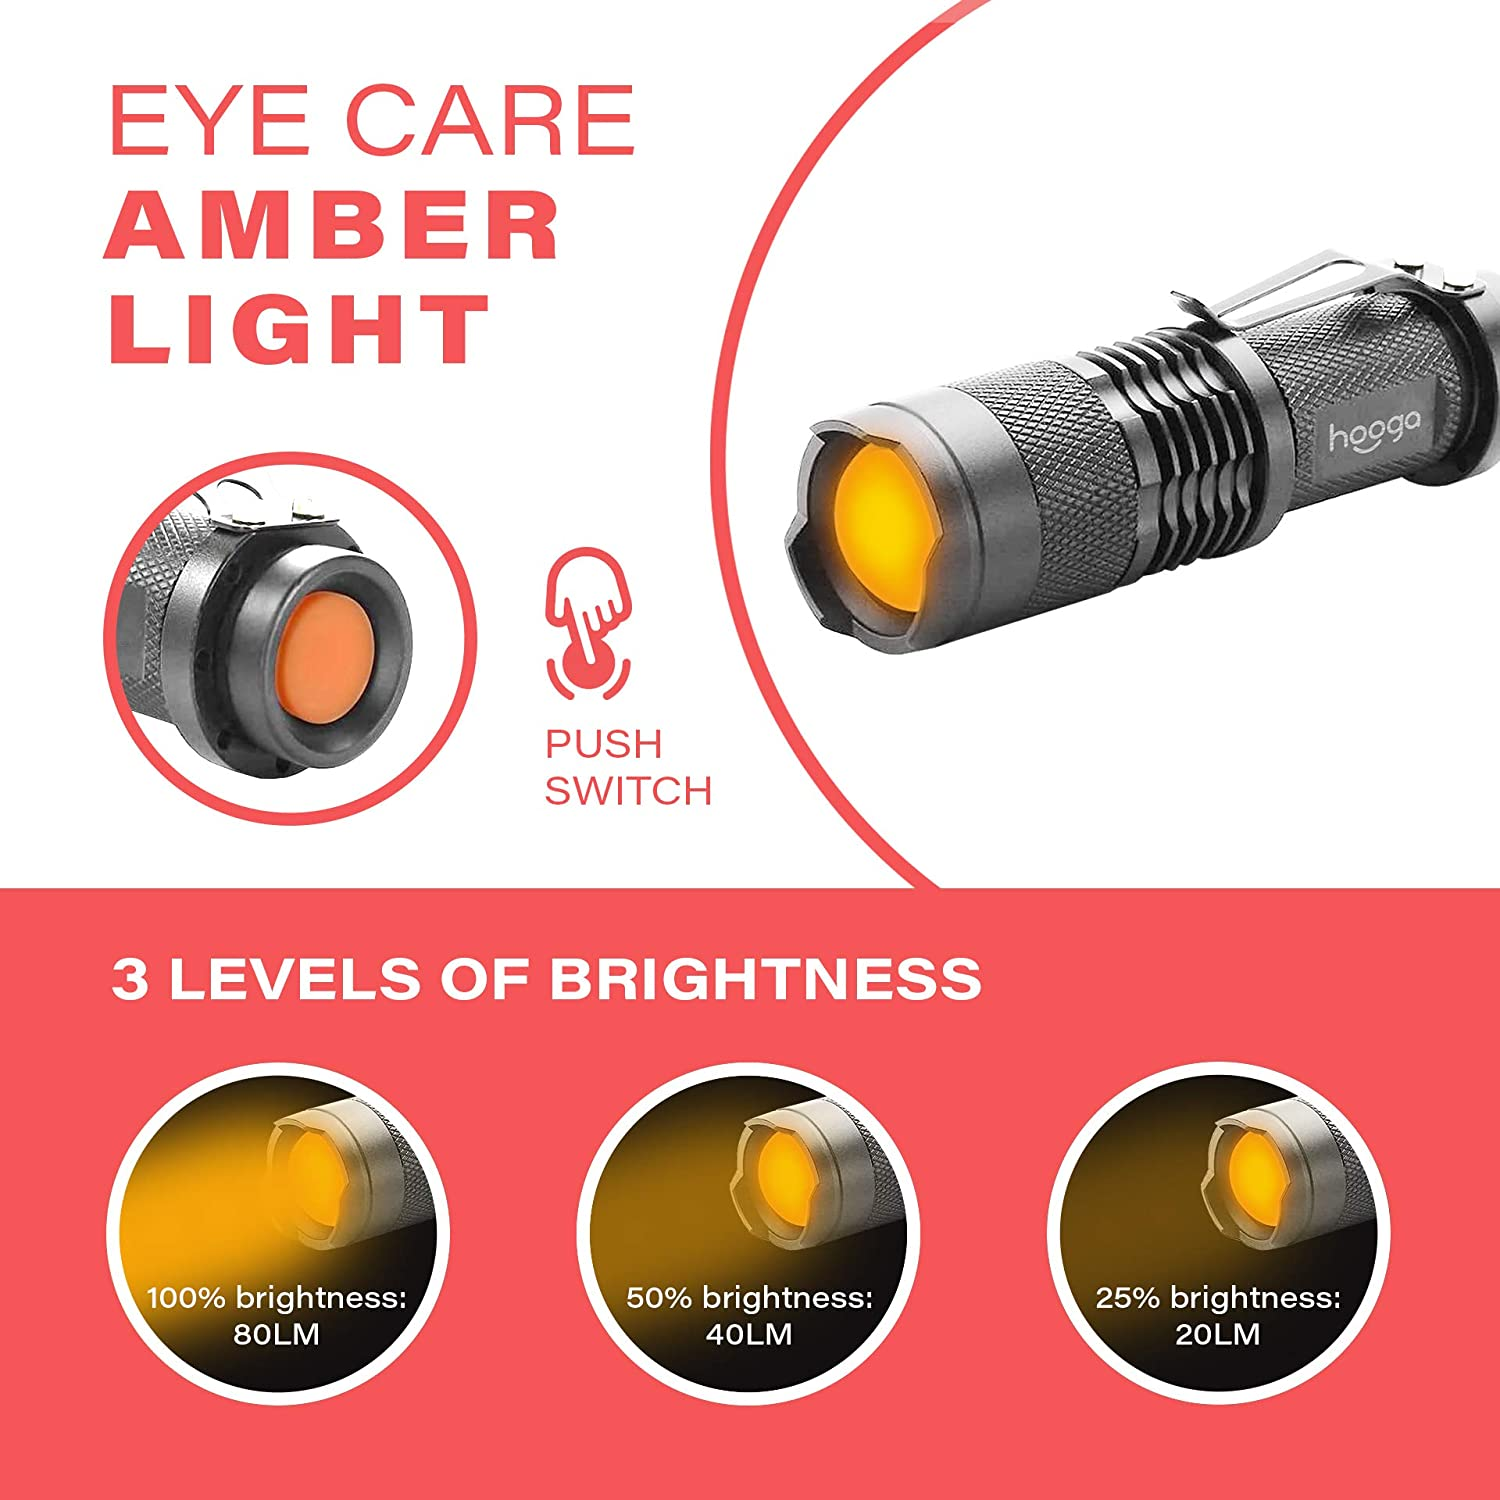 2 Pack 1600K Warm Light for Eye Care Blue Light Blocking Camping Sleep Aid Adjustable Brightness Amber Flashlight by Hooga LED Flashlight Aviation. Great for Hunting AA Battery Included